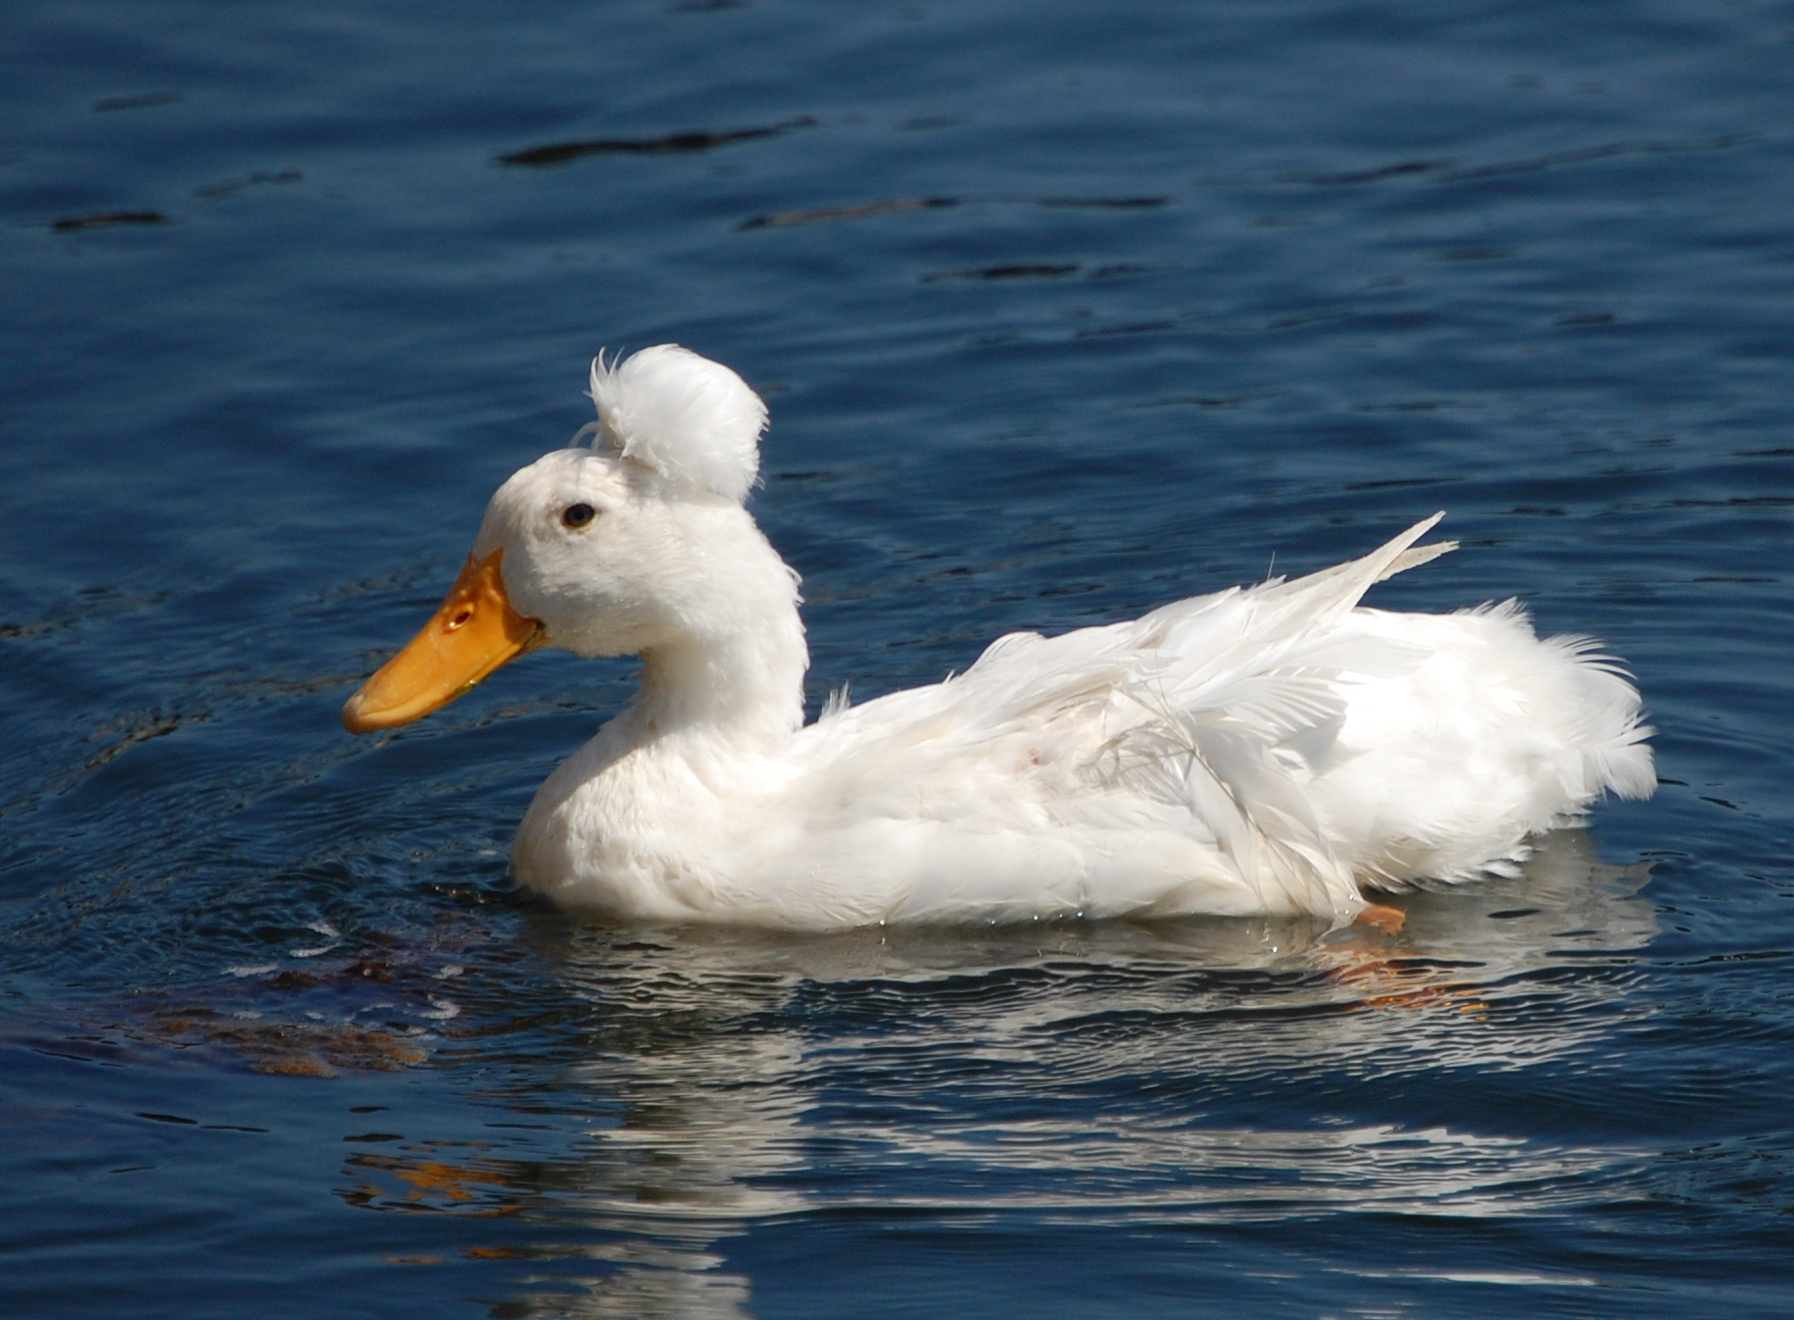 an image of duck%20pet Crested Duck.